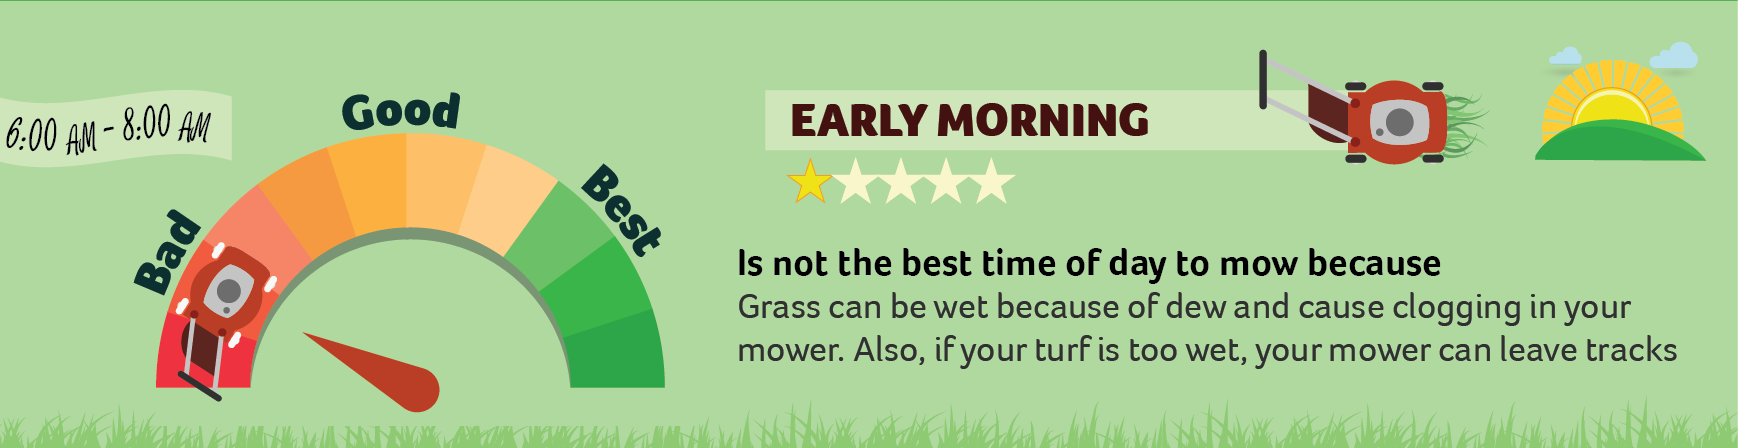 When is the best time of day to mow my lawn? Morning